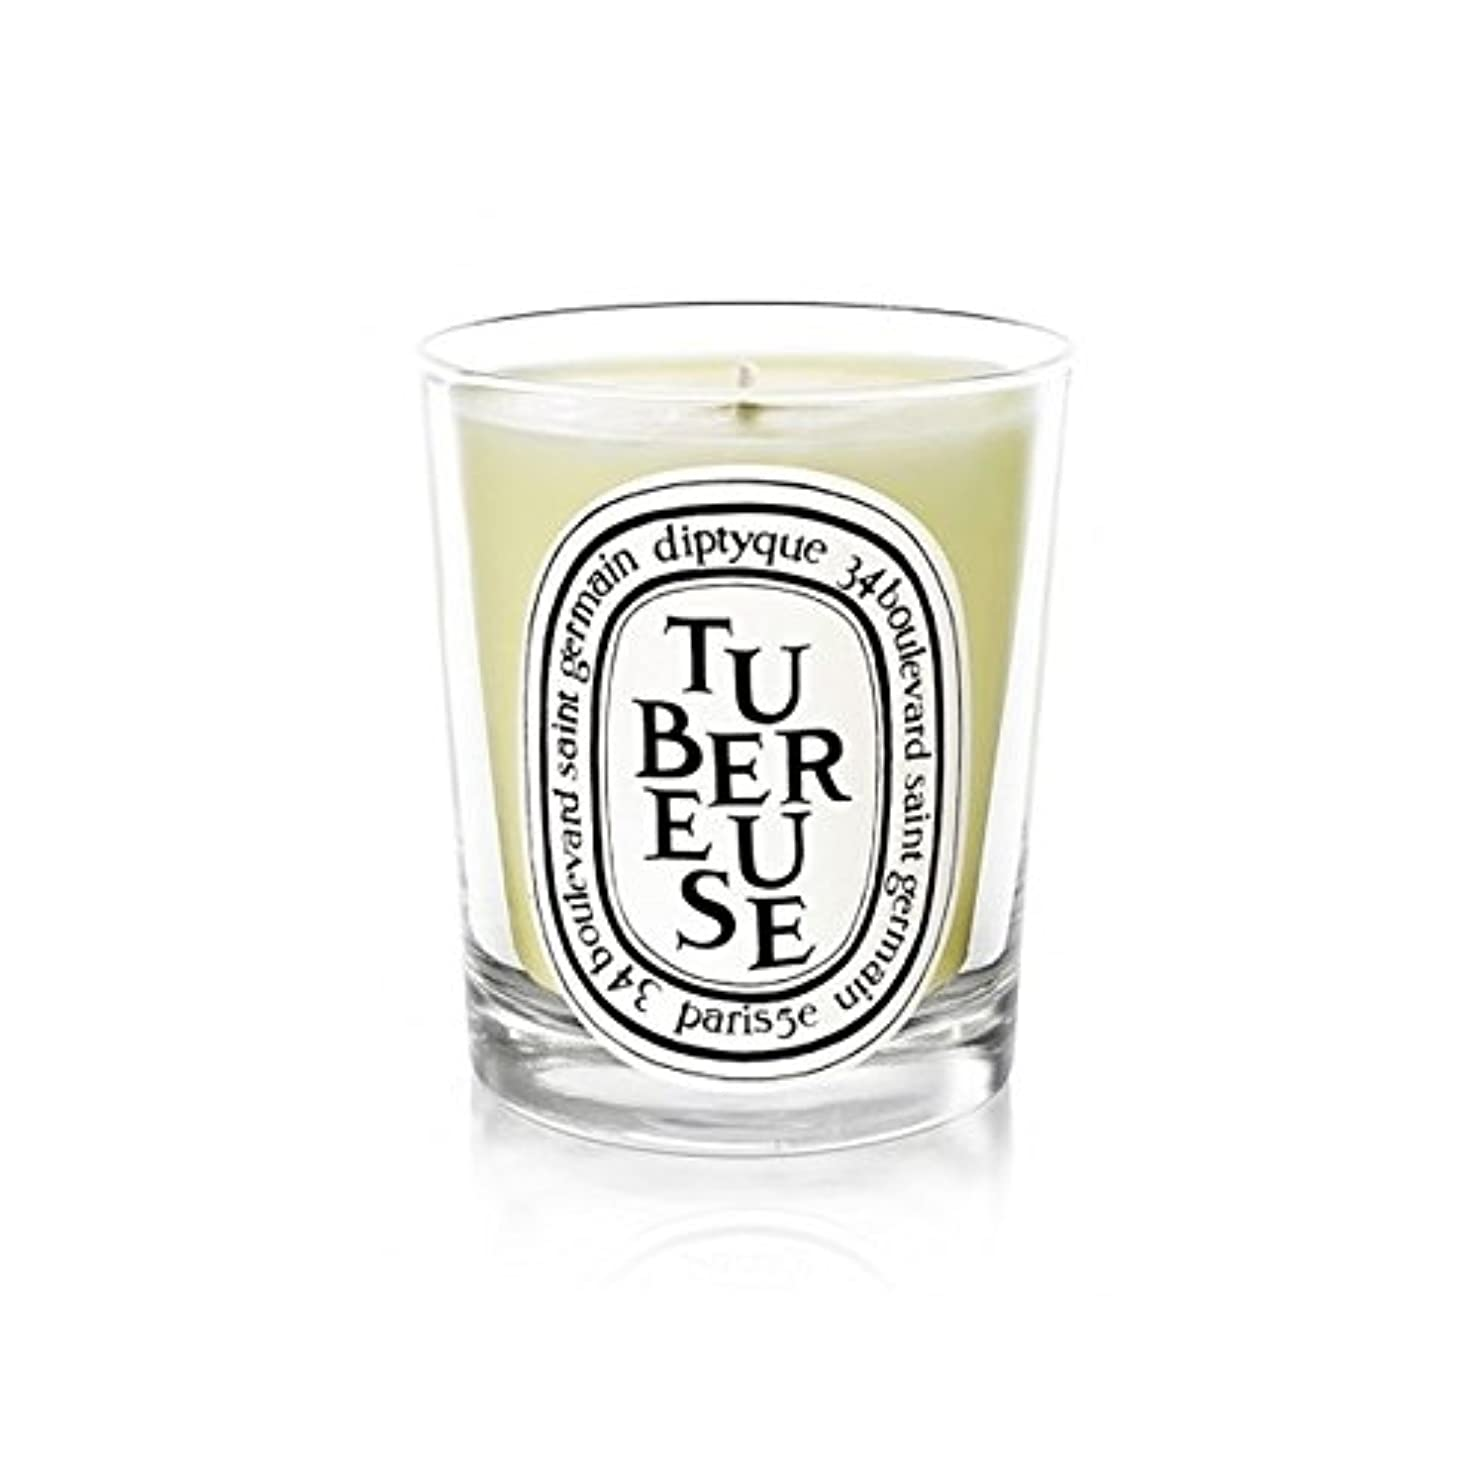 Diptyque Candle Tub?reuse / Tuberose 190g (Pack of 2) - DiptyqueキャンドルTub?reuse/月下の190グラム (x2) [並行輸入品]